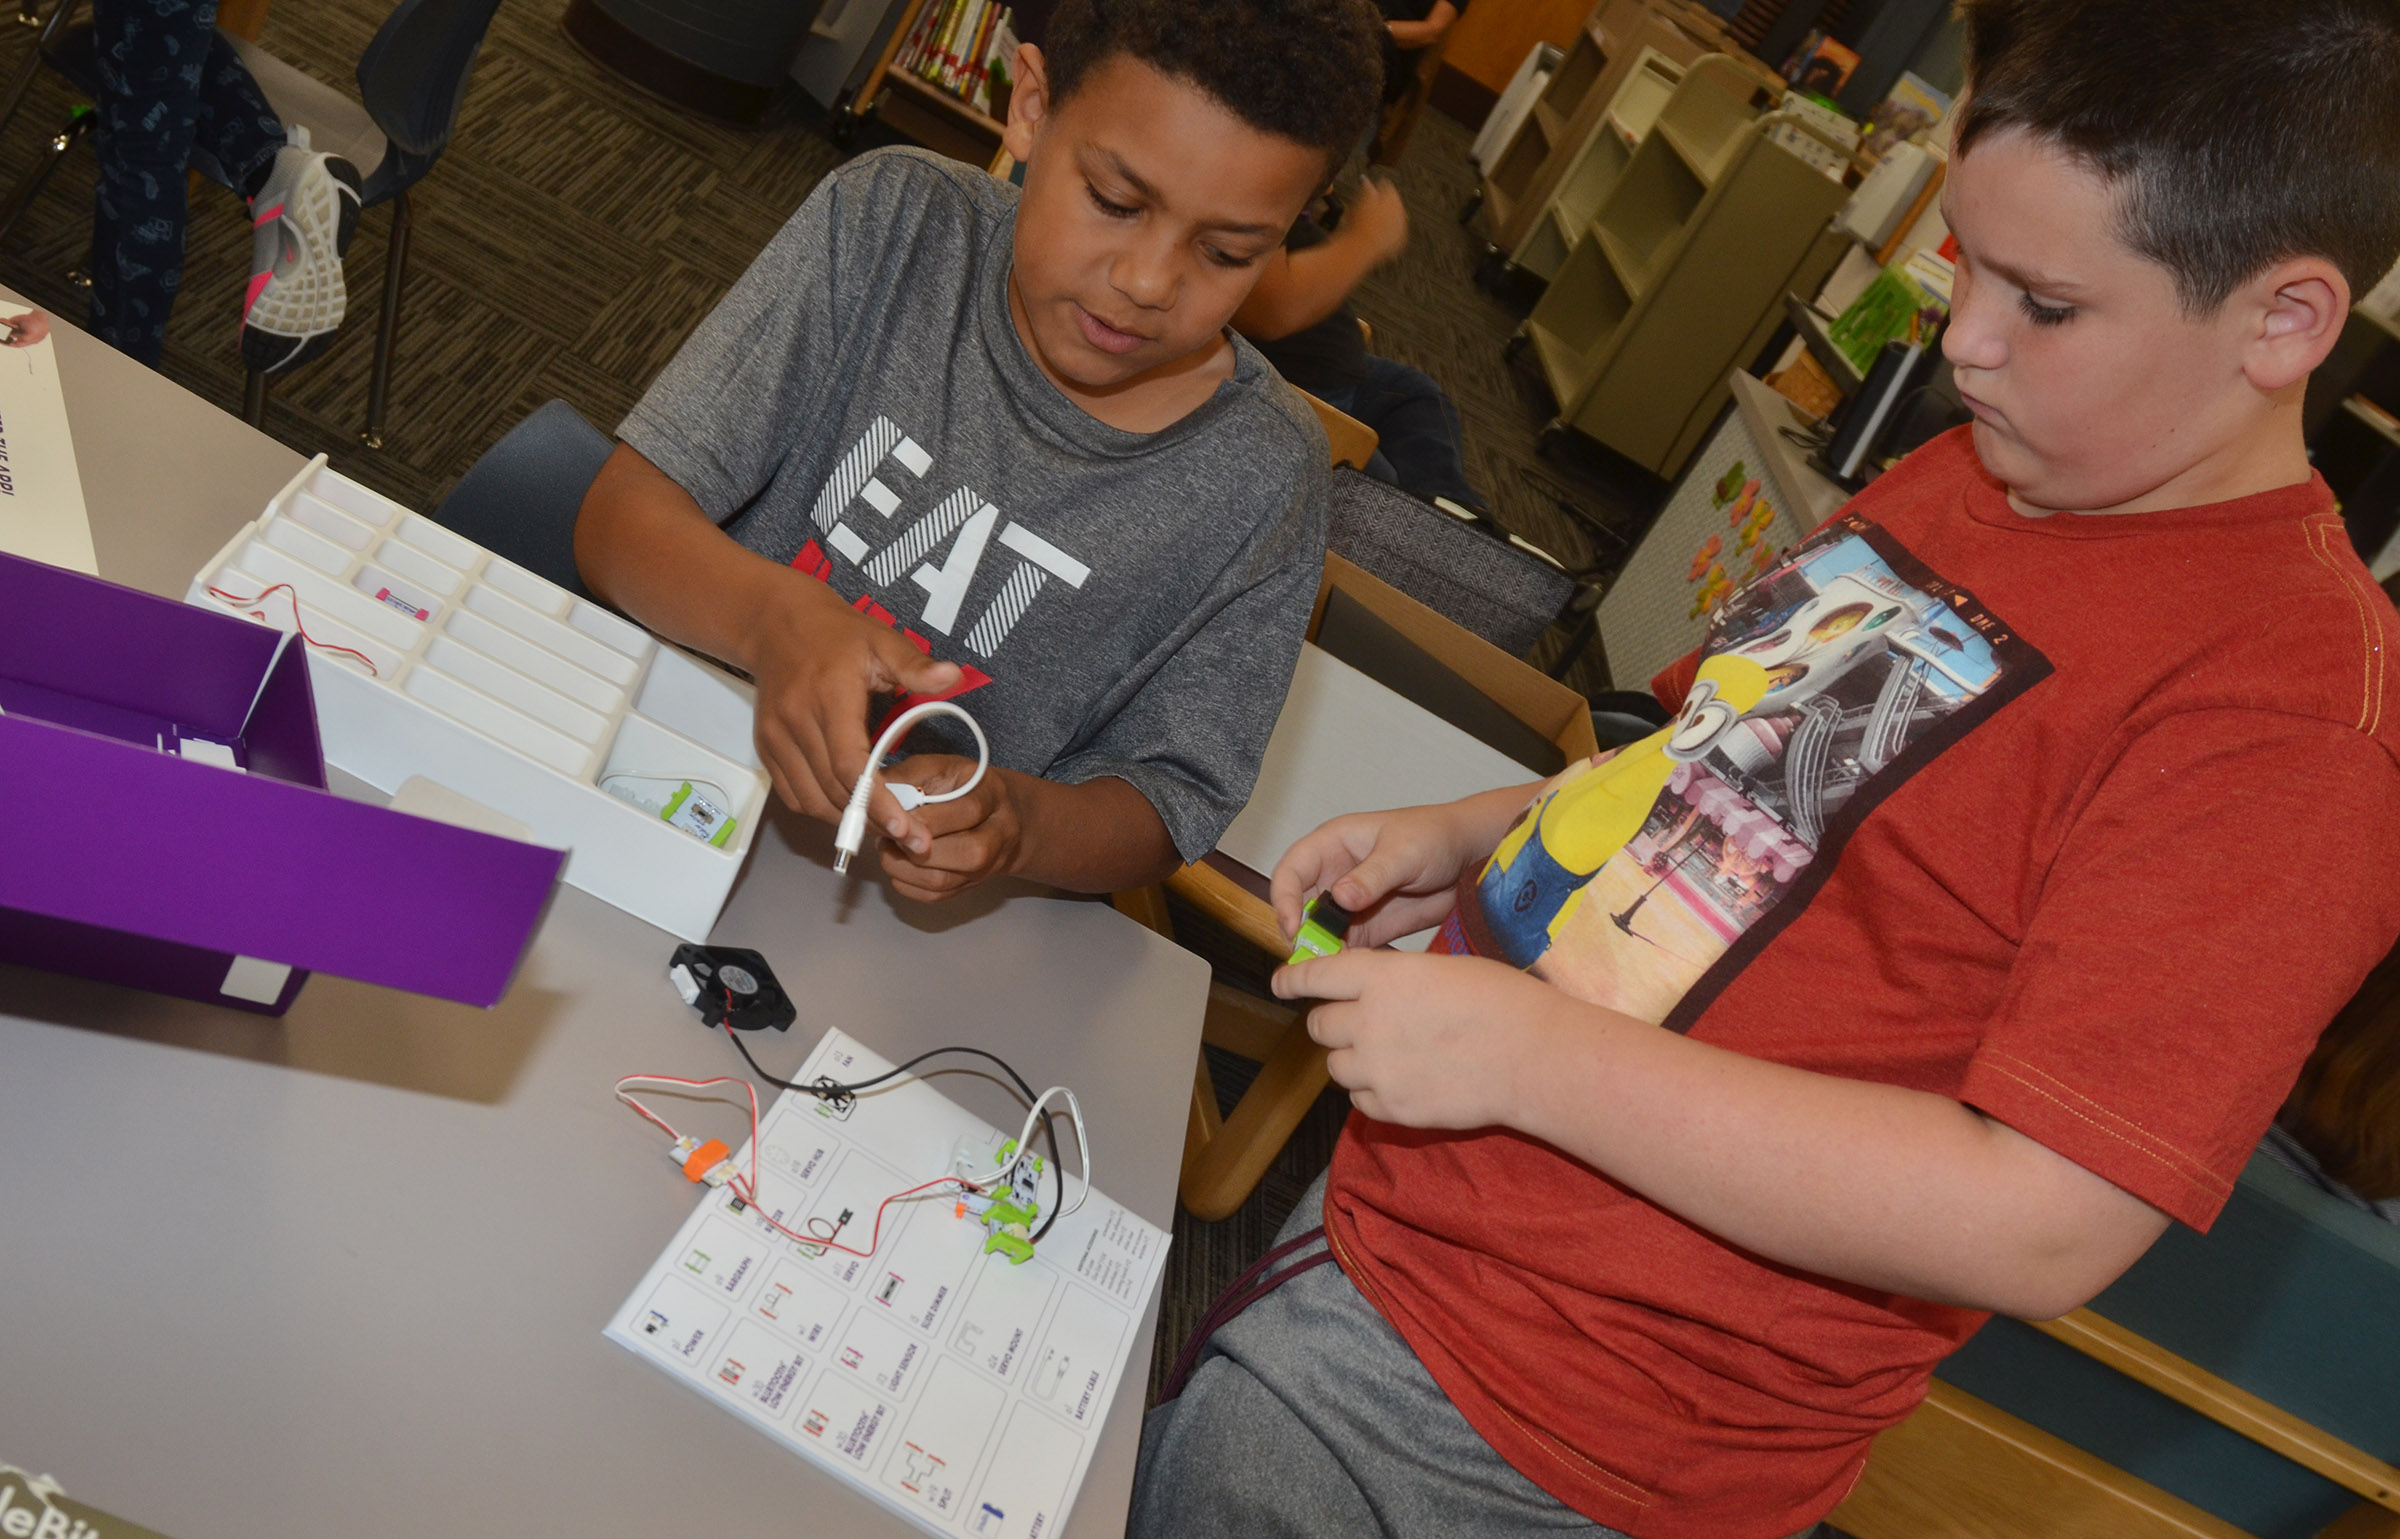 CES fourth-graders Christian Hart, at left, and Ethan Garrison work together.